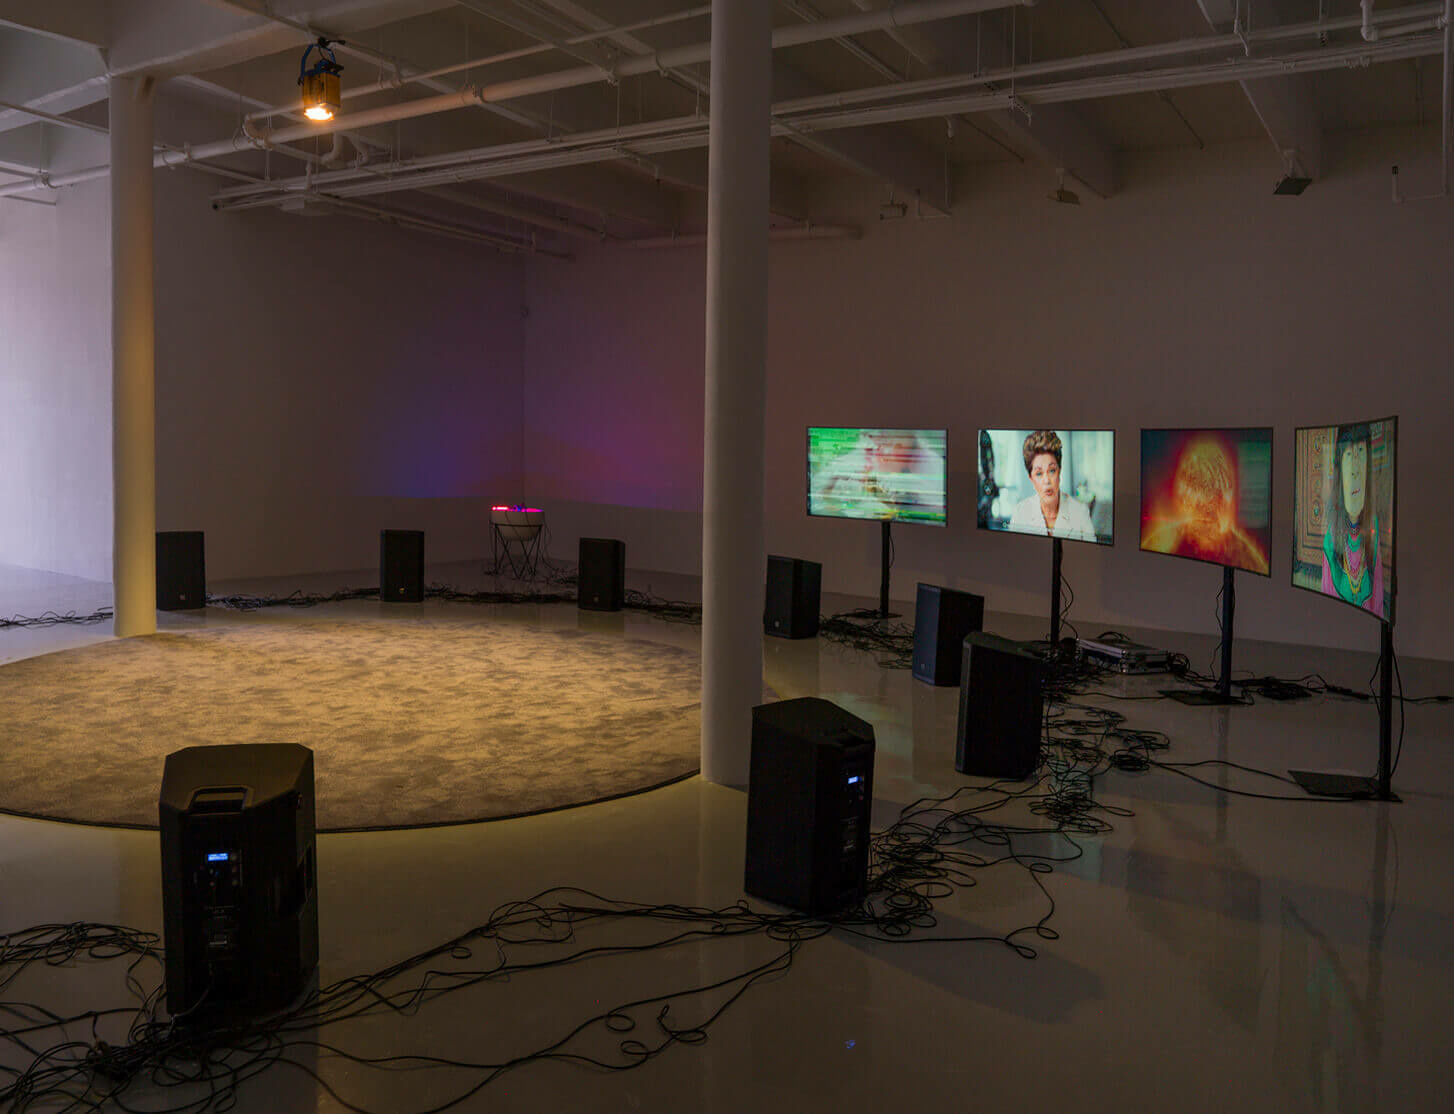 Haroon Mirza's solo exhibition of light and sound installations opens this week at Sifang Art Museum, Nanjing